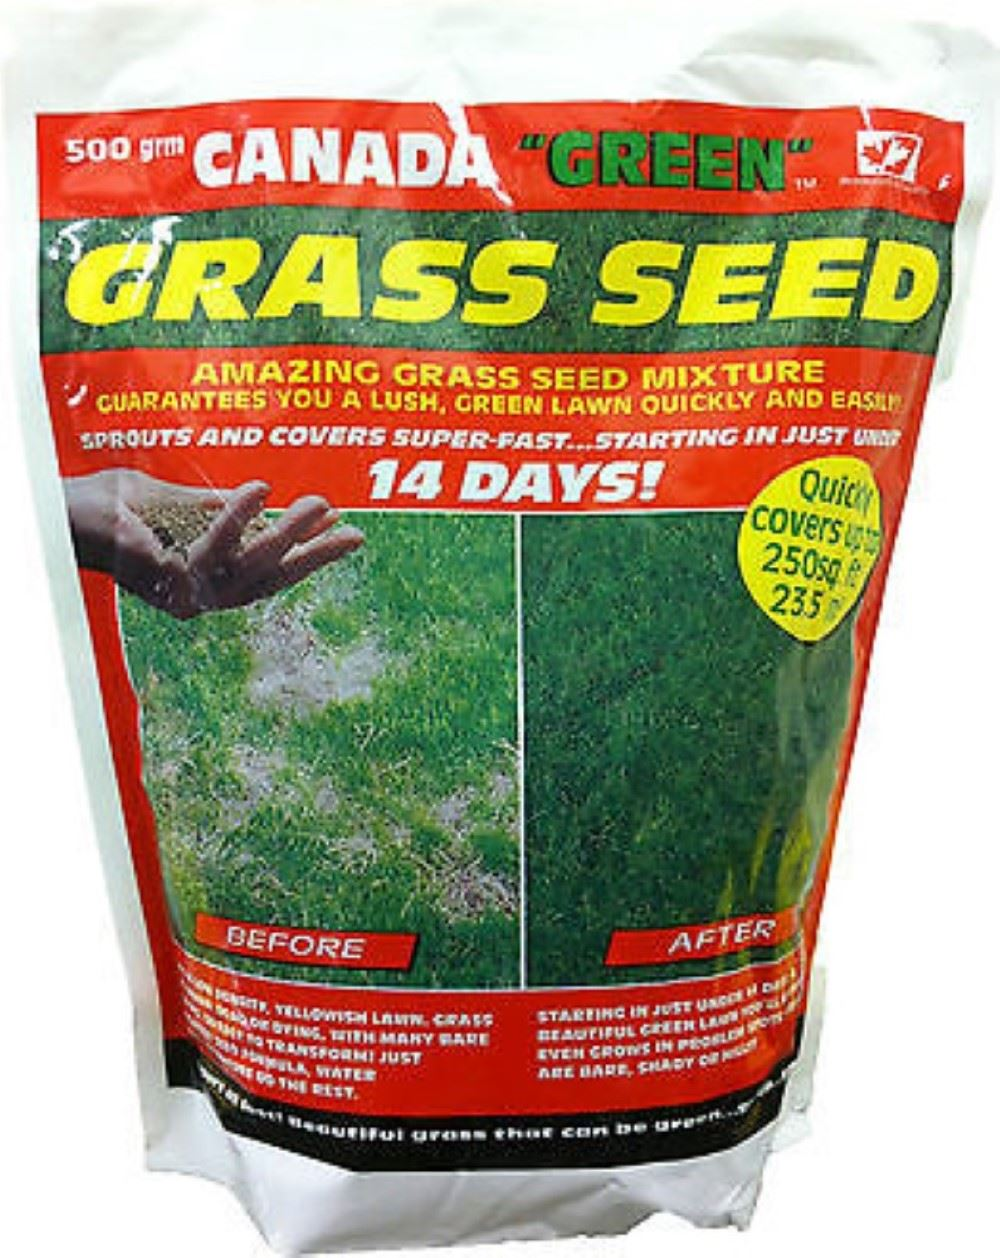 Magnificent Free Packets Bag Canada Green Grass Seed Free Packets Flower Canada Green Grass Seed Argos Canada Green Grass Seed Stockist Canada Green Grass Seed Flower Seeds Bag houzz-03 Canada Green Grass